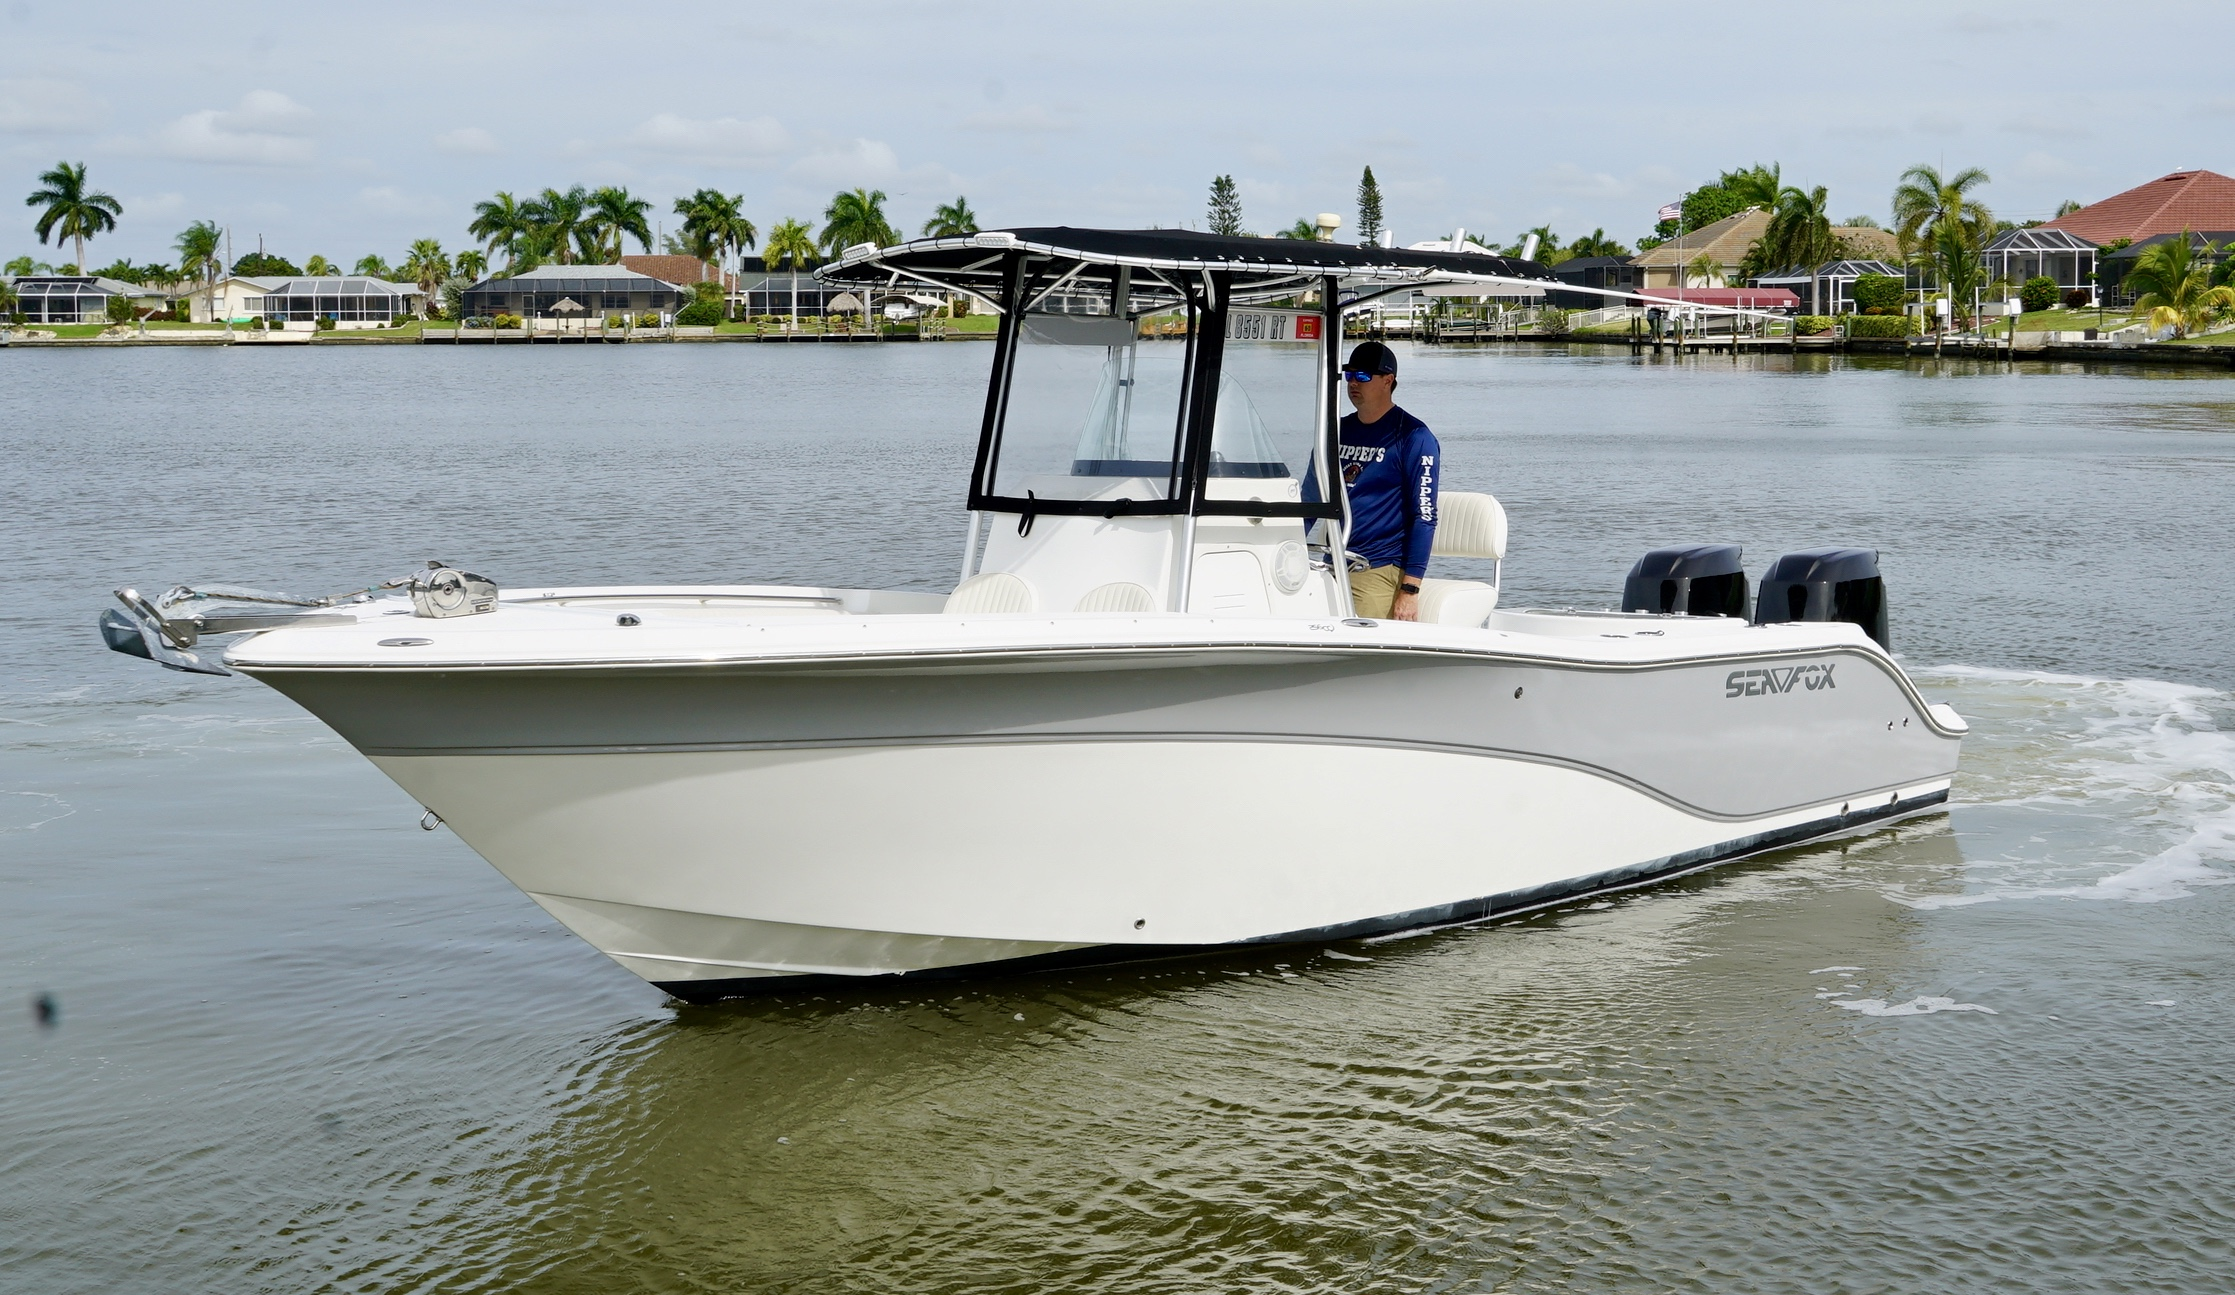 Sea Fox 256 CENTER CONSOLE PRO SERIES